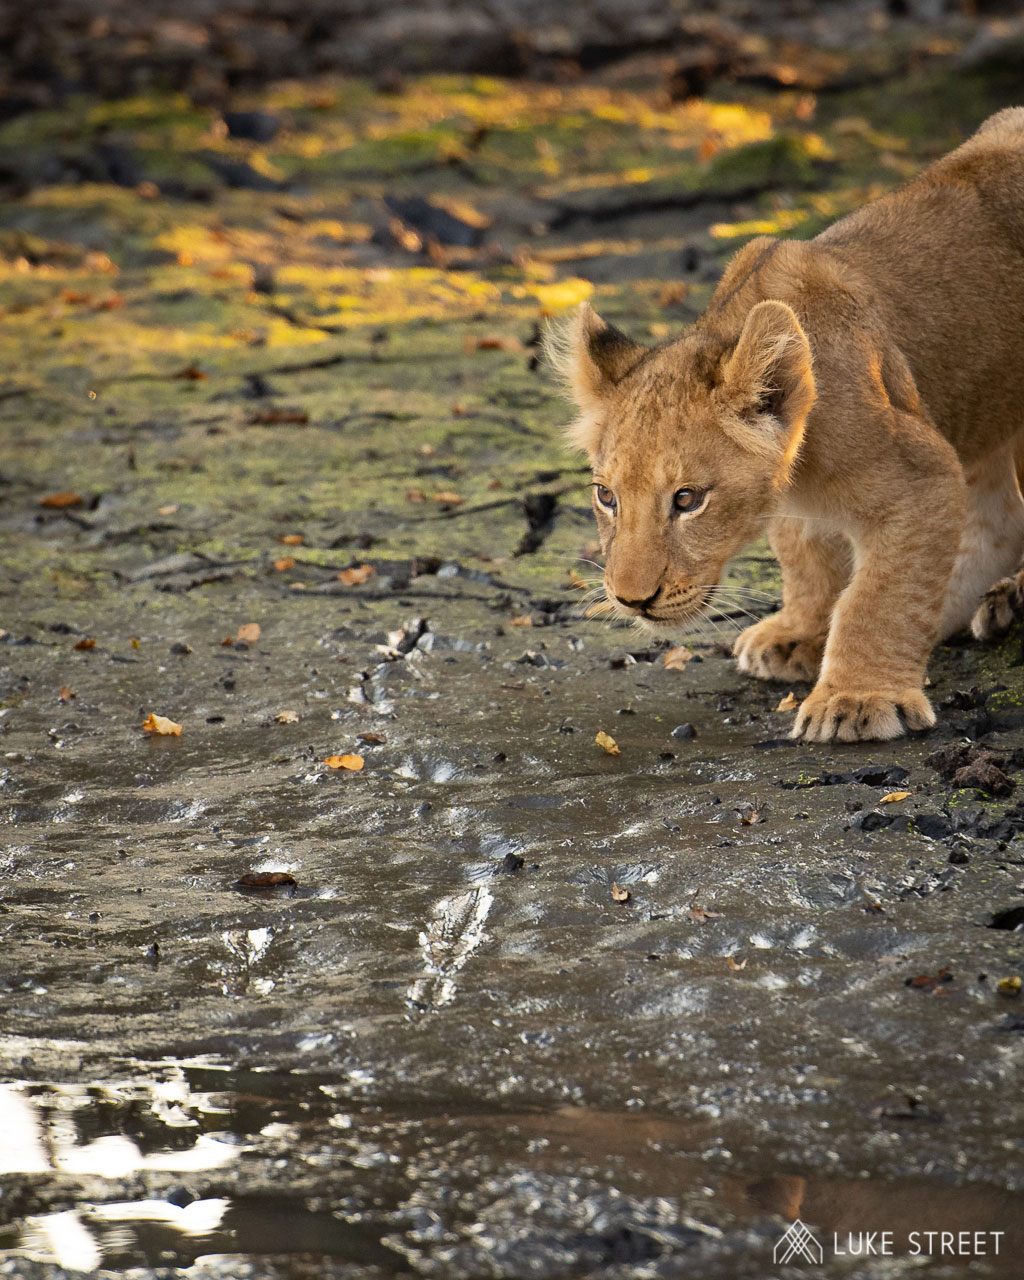 Tanda Tula - lion cub drinking water in the Greater Kruger